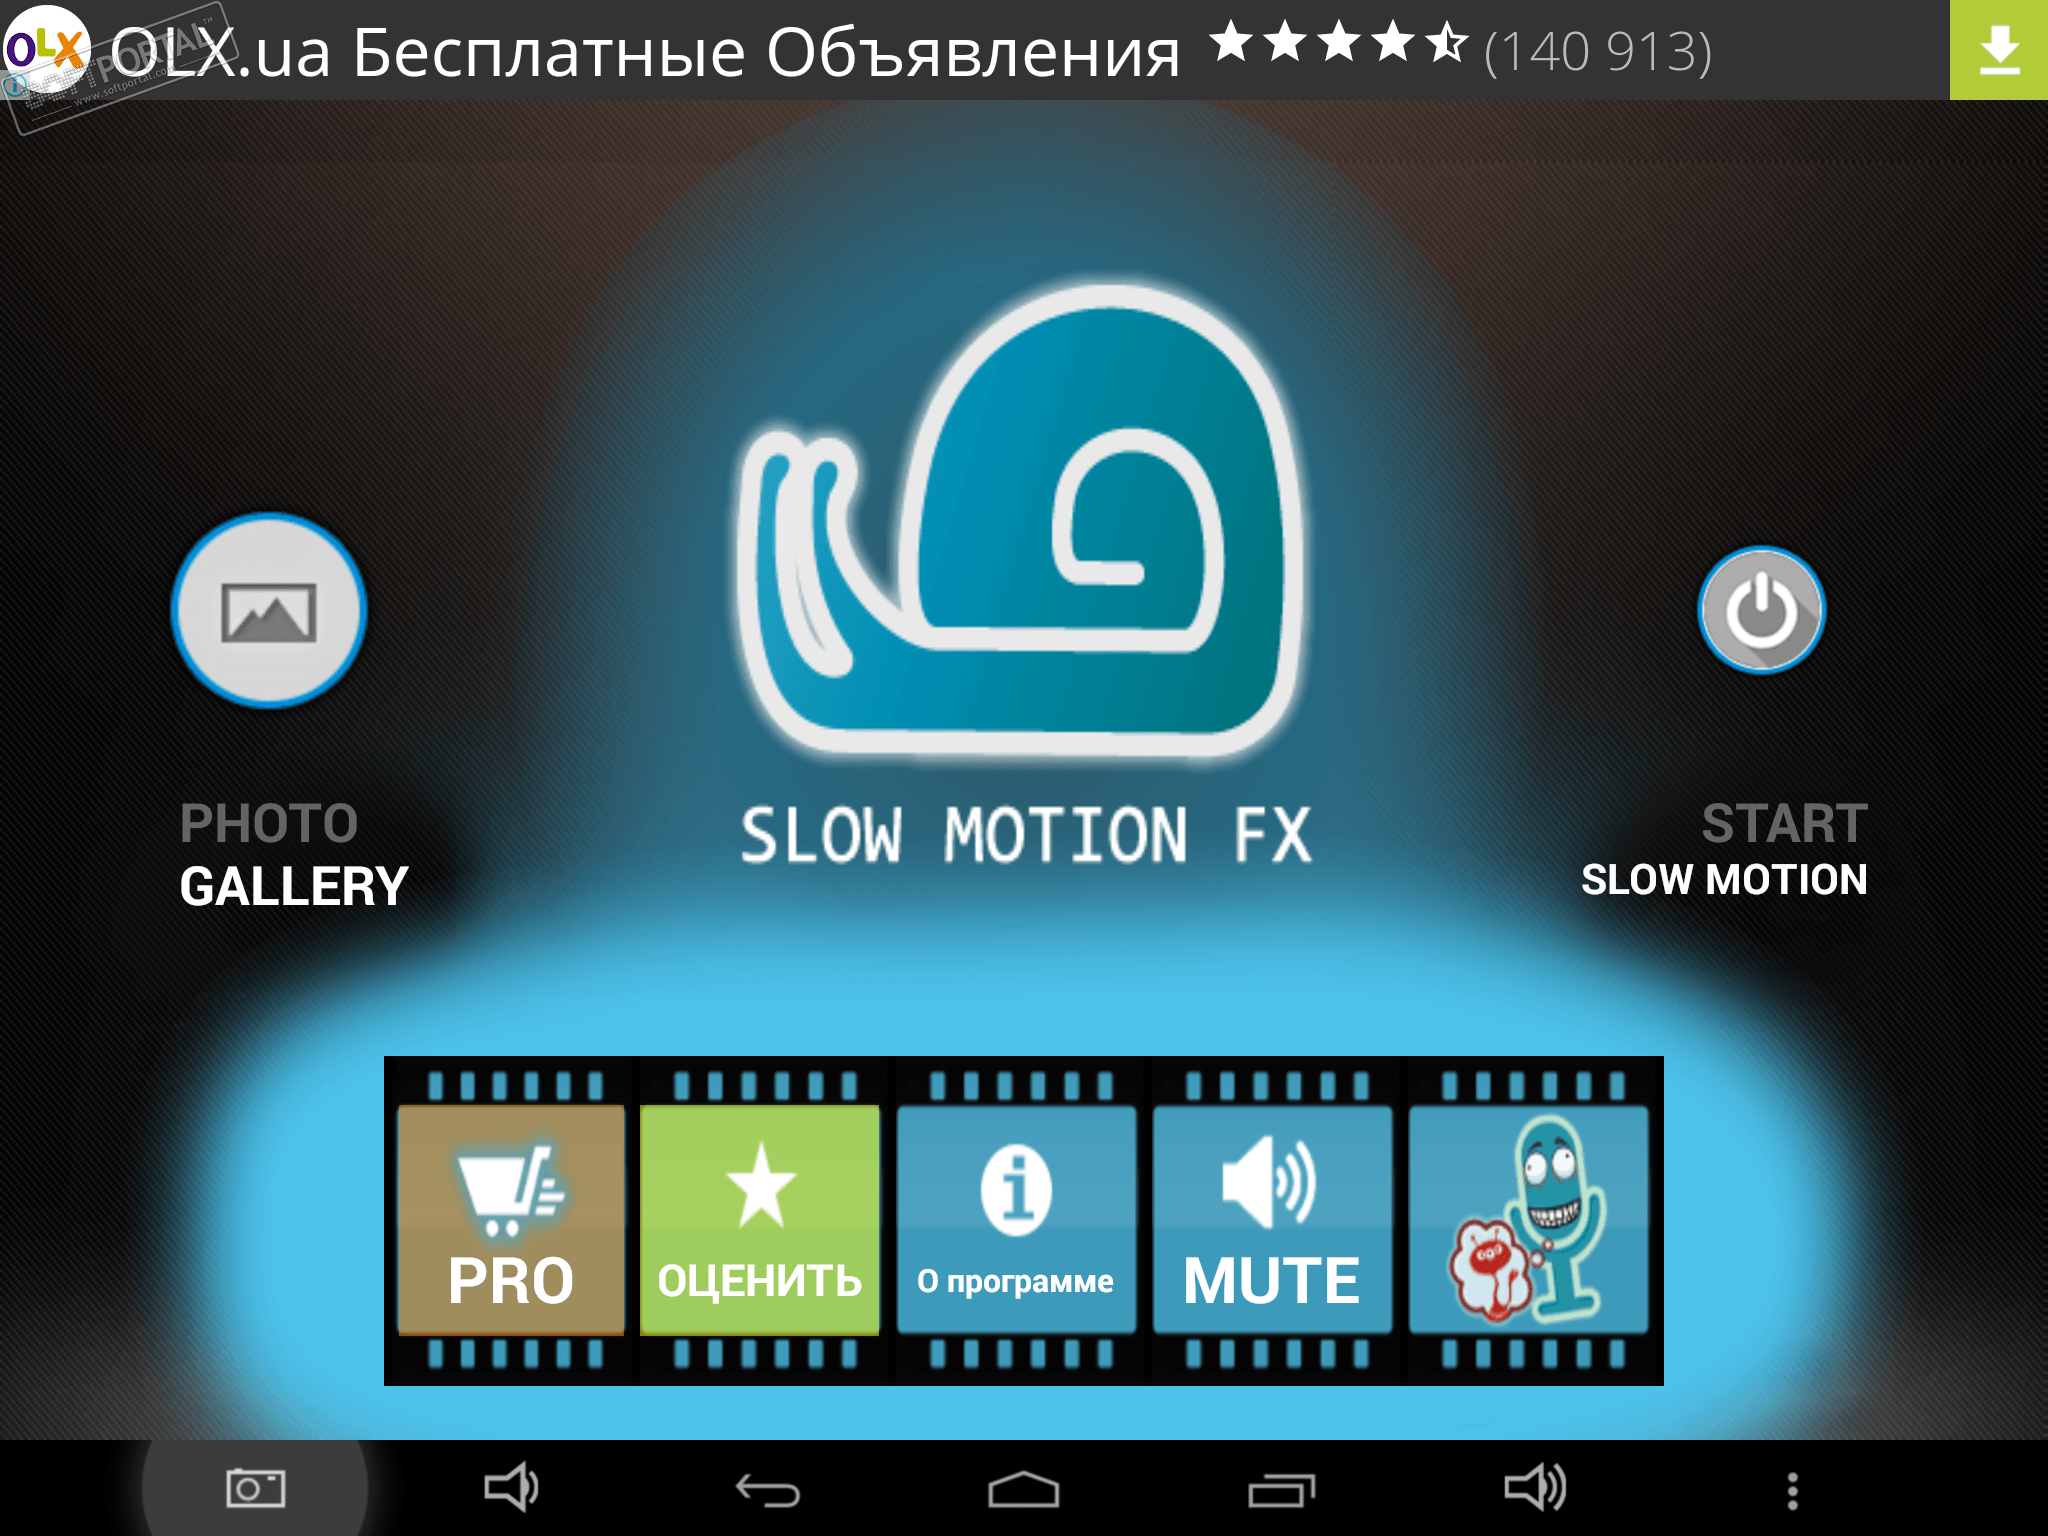 Slow motion video fx скачать бесплатно slow motion video fx 1. 0.